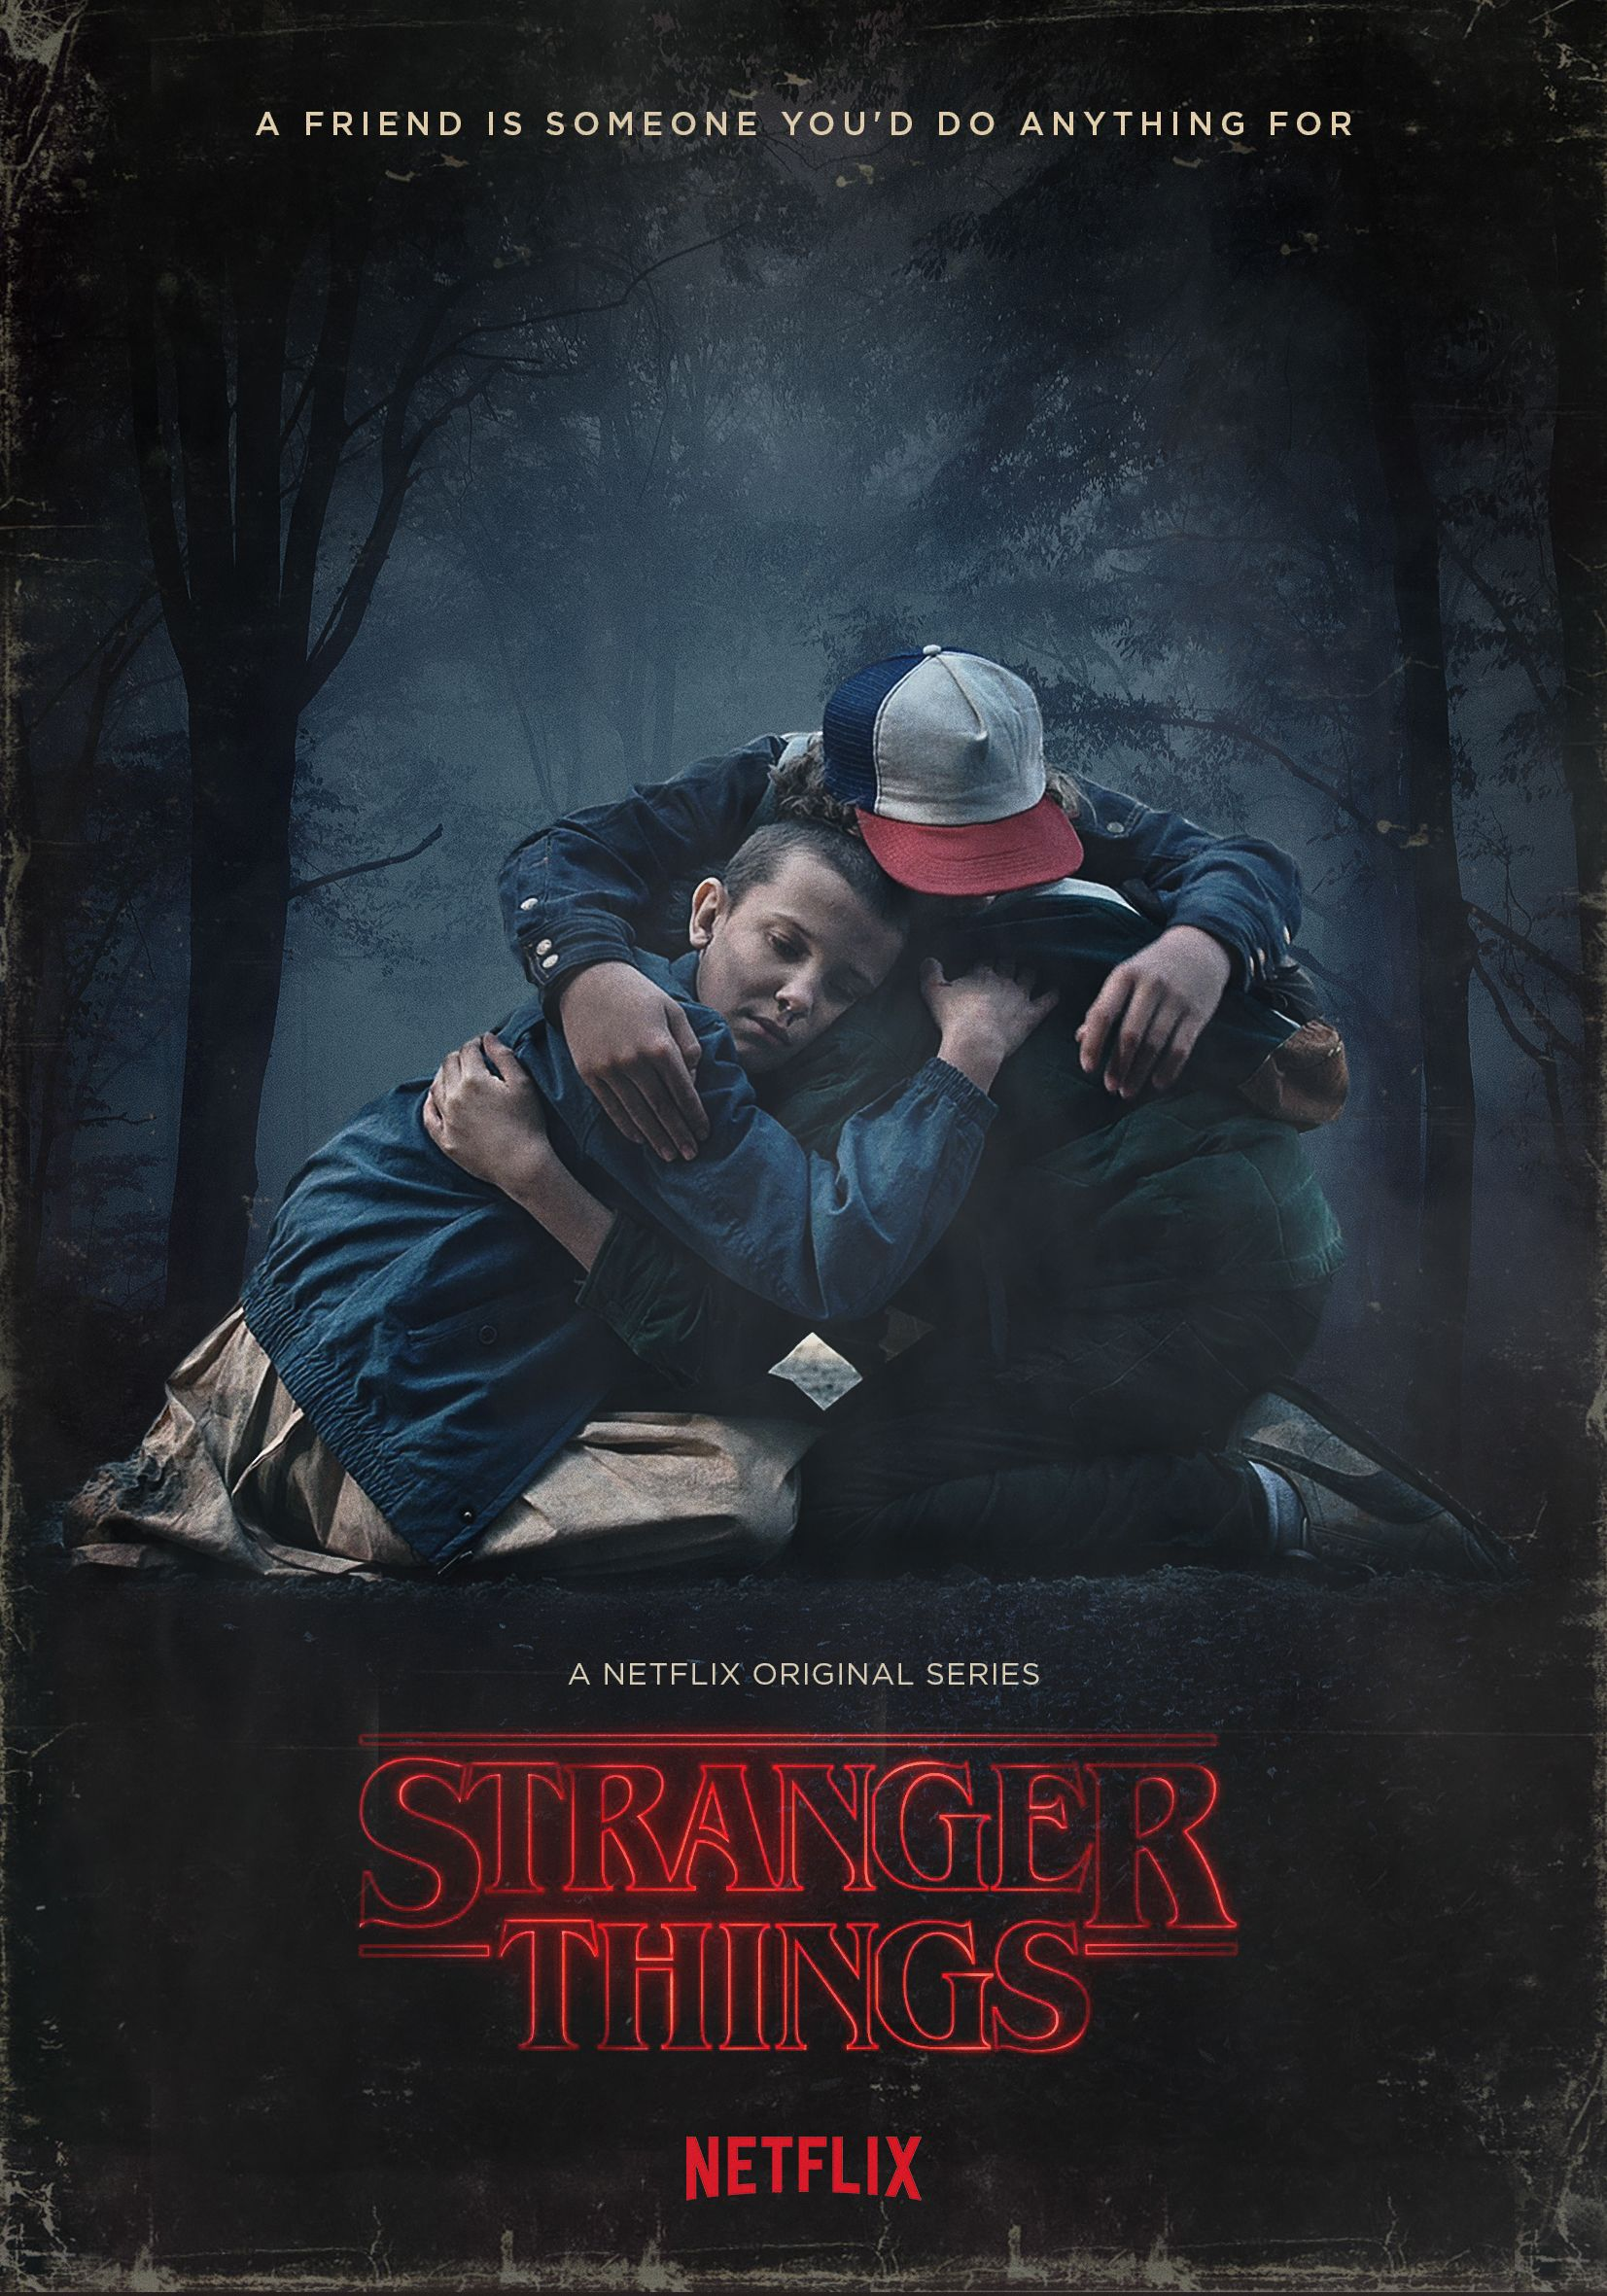 Stranger Things FanArt Poster 4 by Federico Mauro (2016